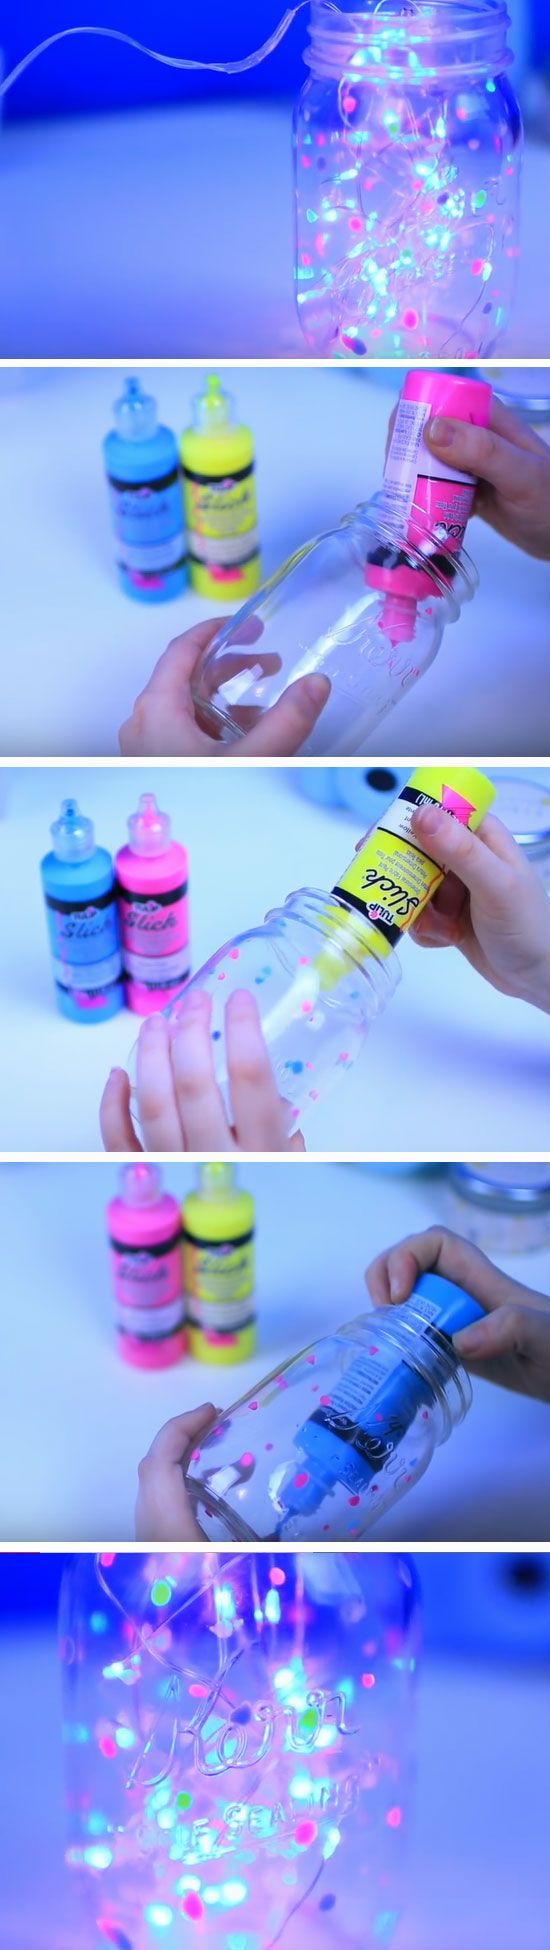 Fairy Glow Jar | 18 DIY Summer Tumblr Room Decor Ideas that are insanely cute!